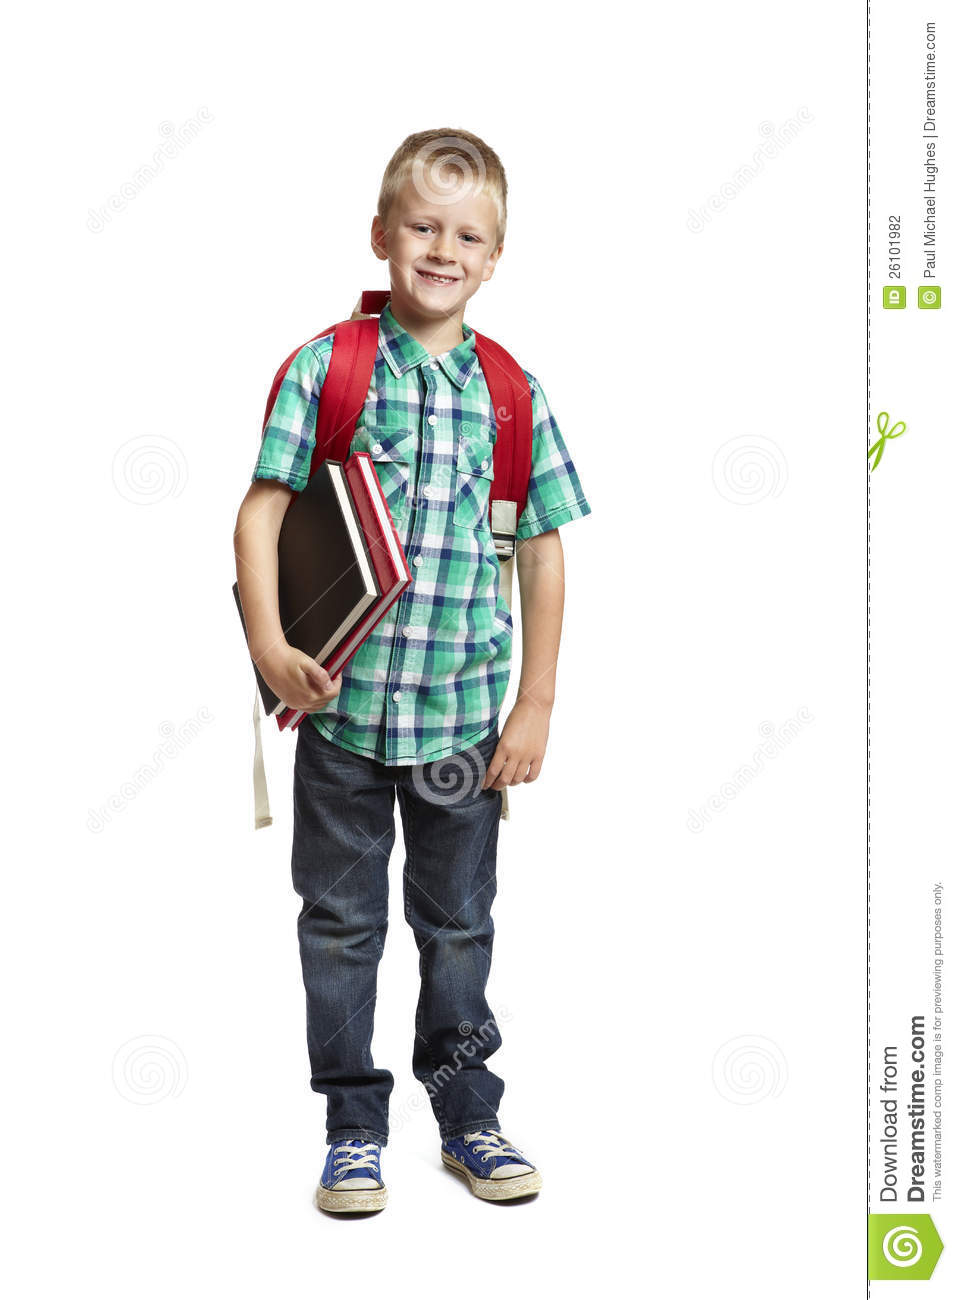 8 Year Boy Bedroom Design: School Boy With Backpack On White Background Stock